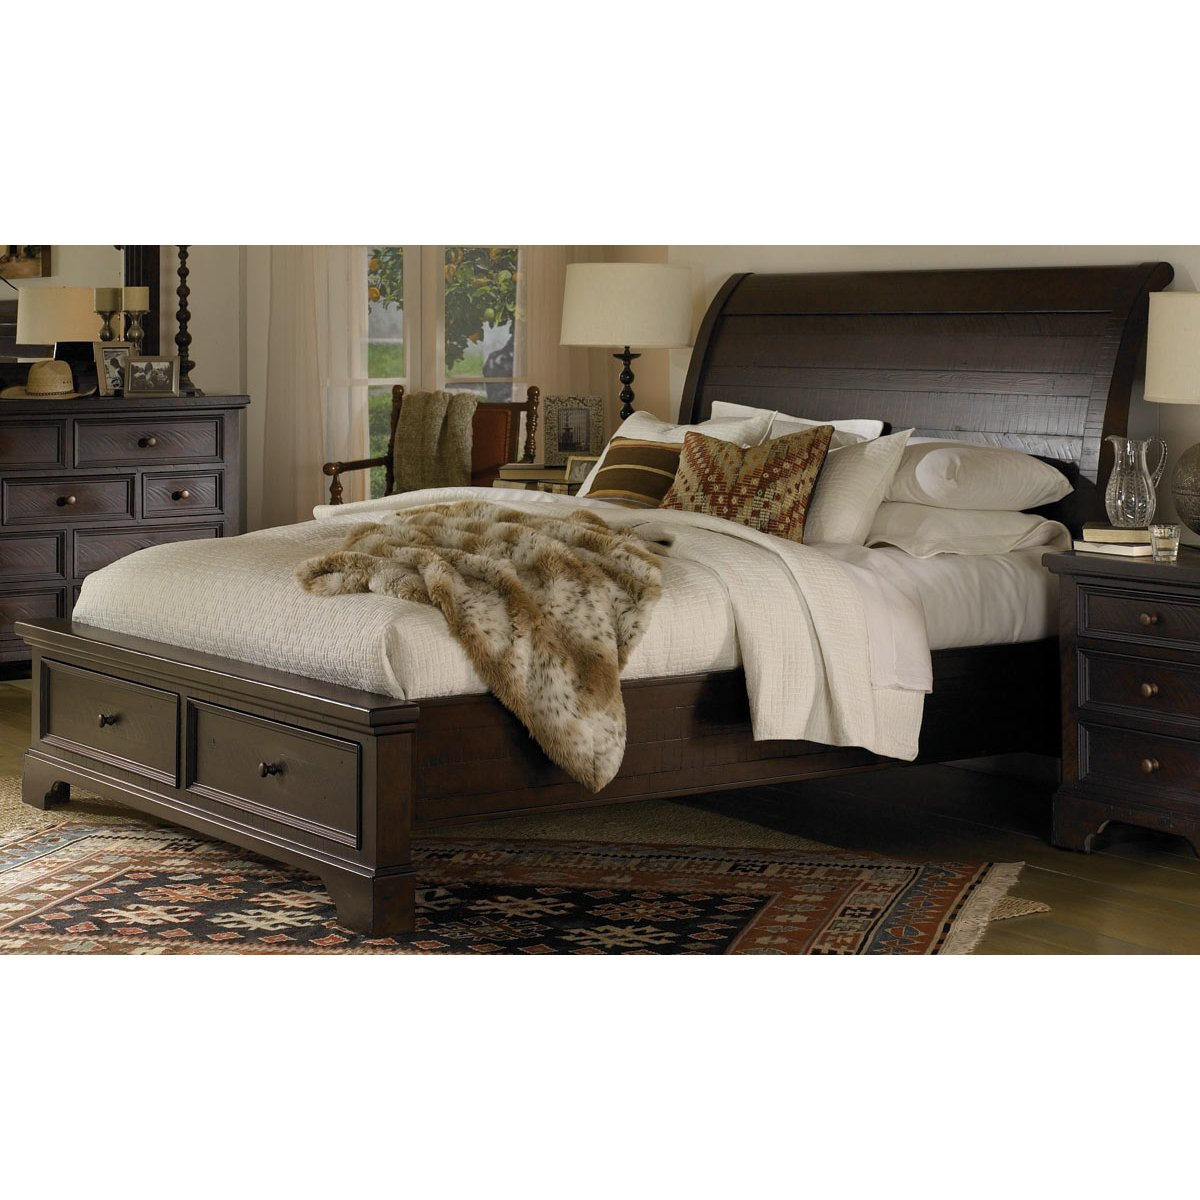 Mahogany King Storage Bed - Bayfield